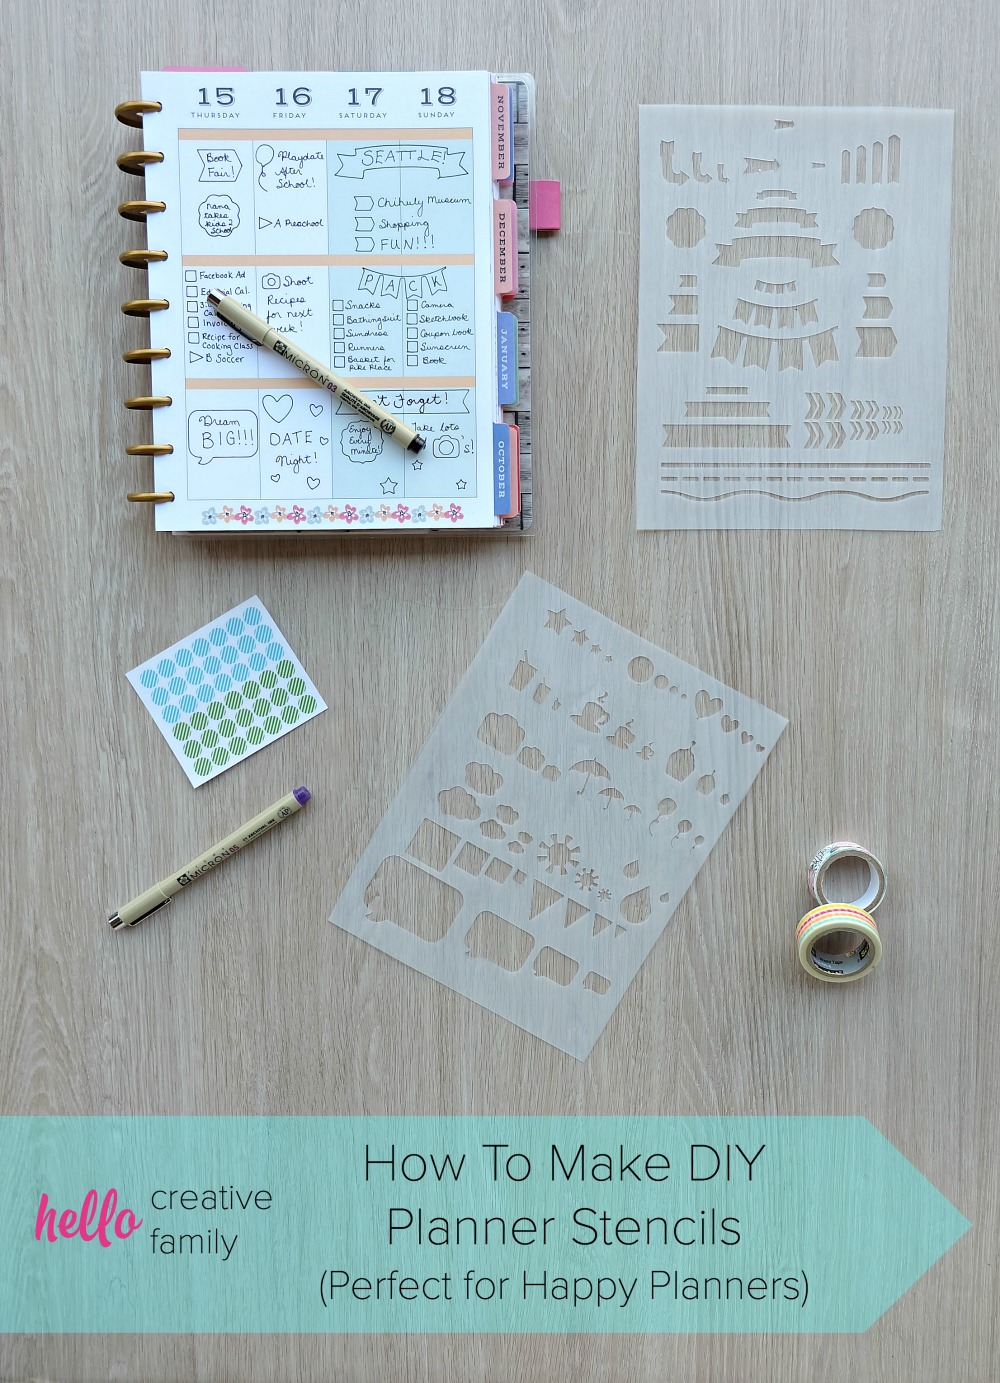 How To Make Diy Planner Stencils Perfect For Happy Planners